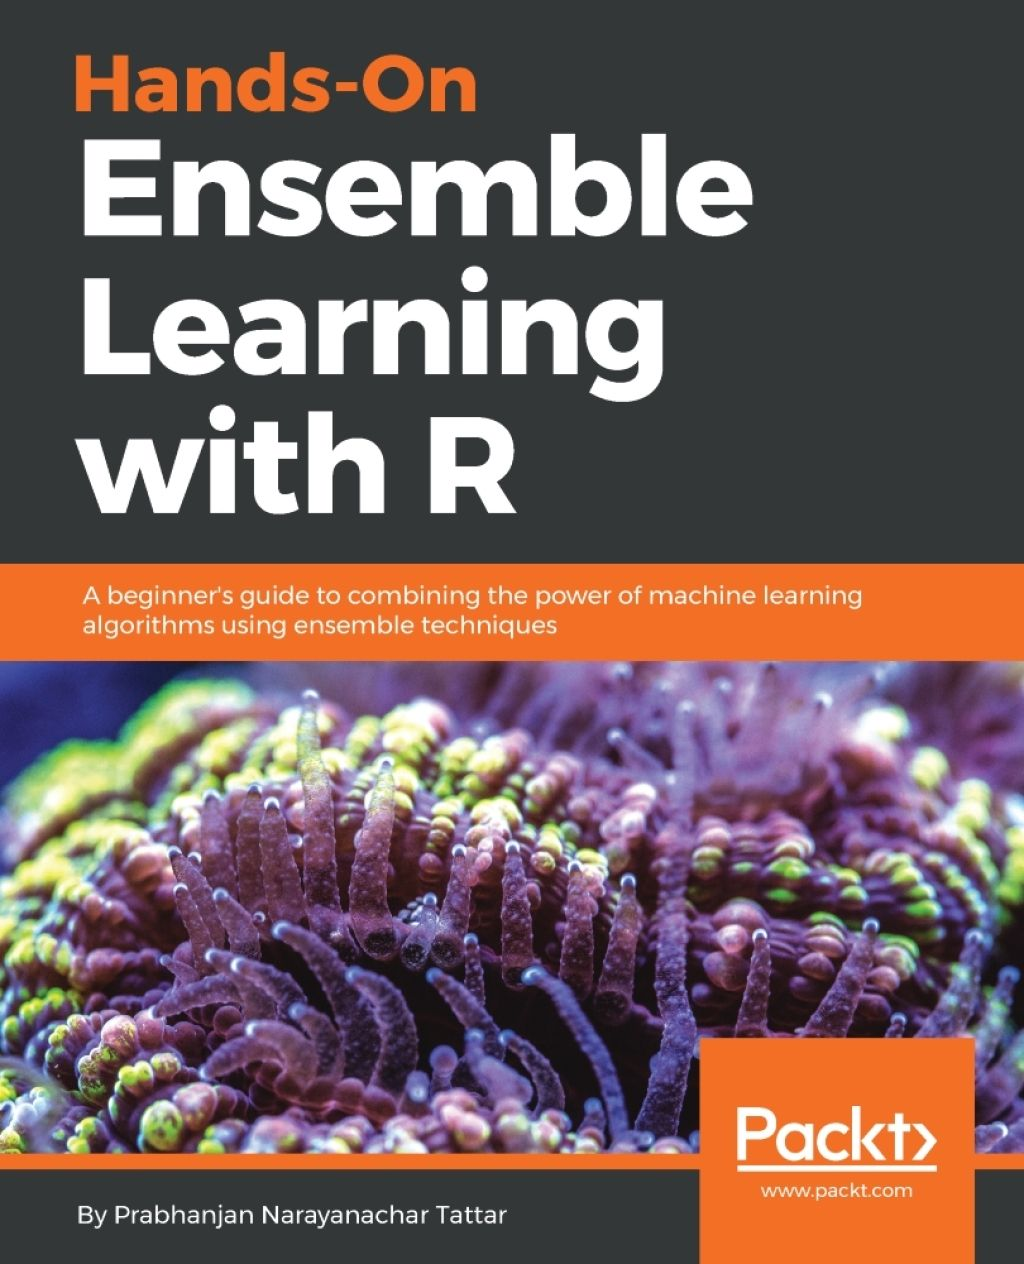 Hands-On Ensemble Learning with R (eBook) in 2019 | Products